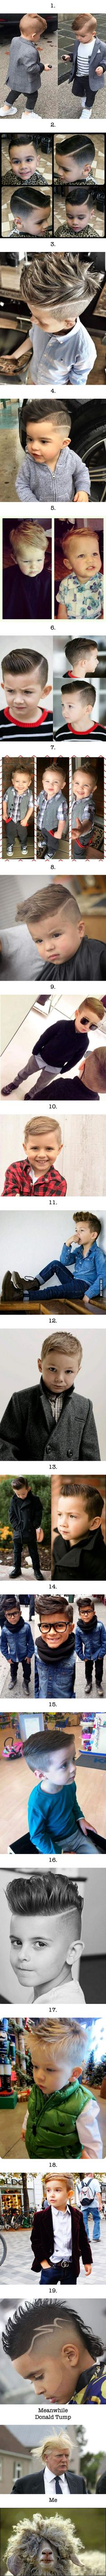 19 toddlers that have better hairstyles than you